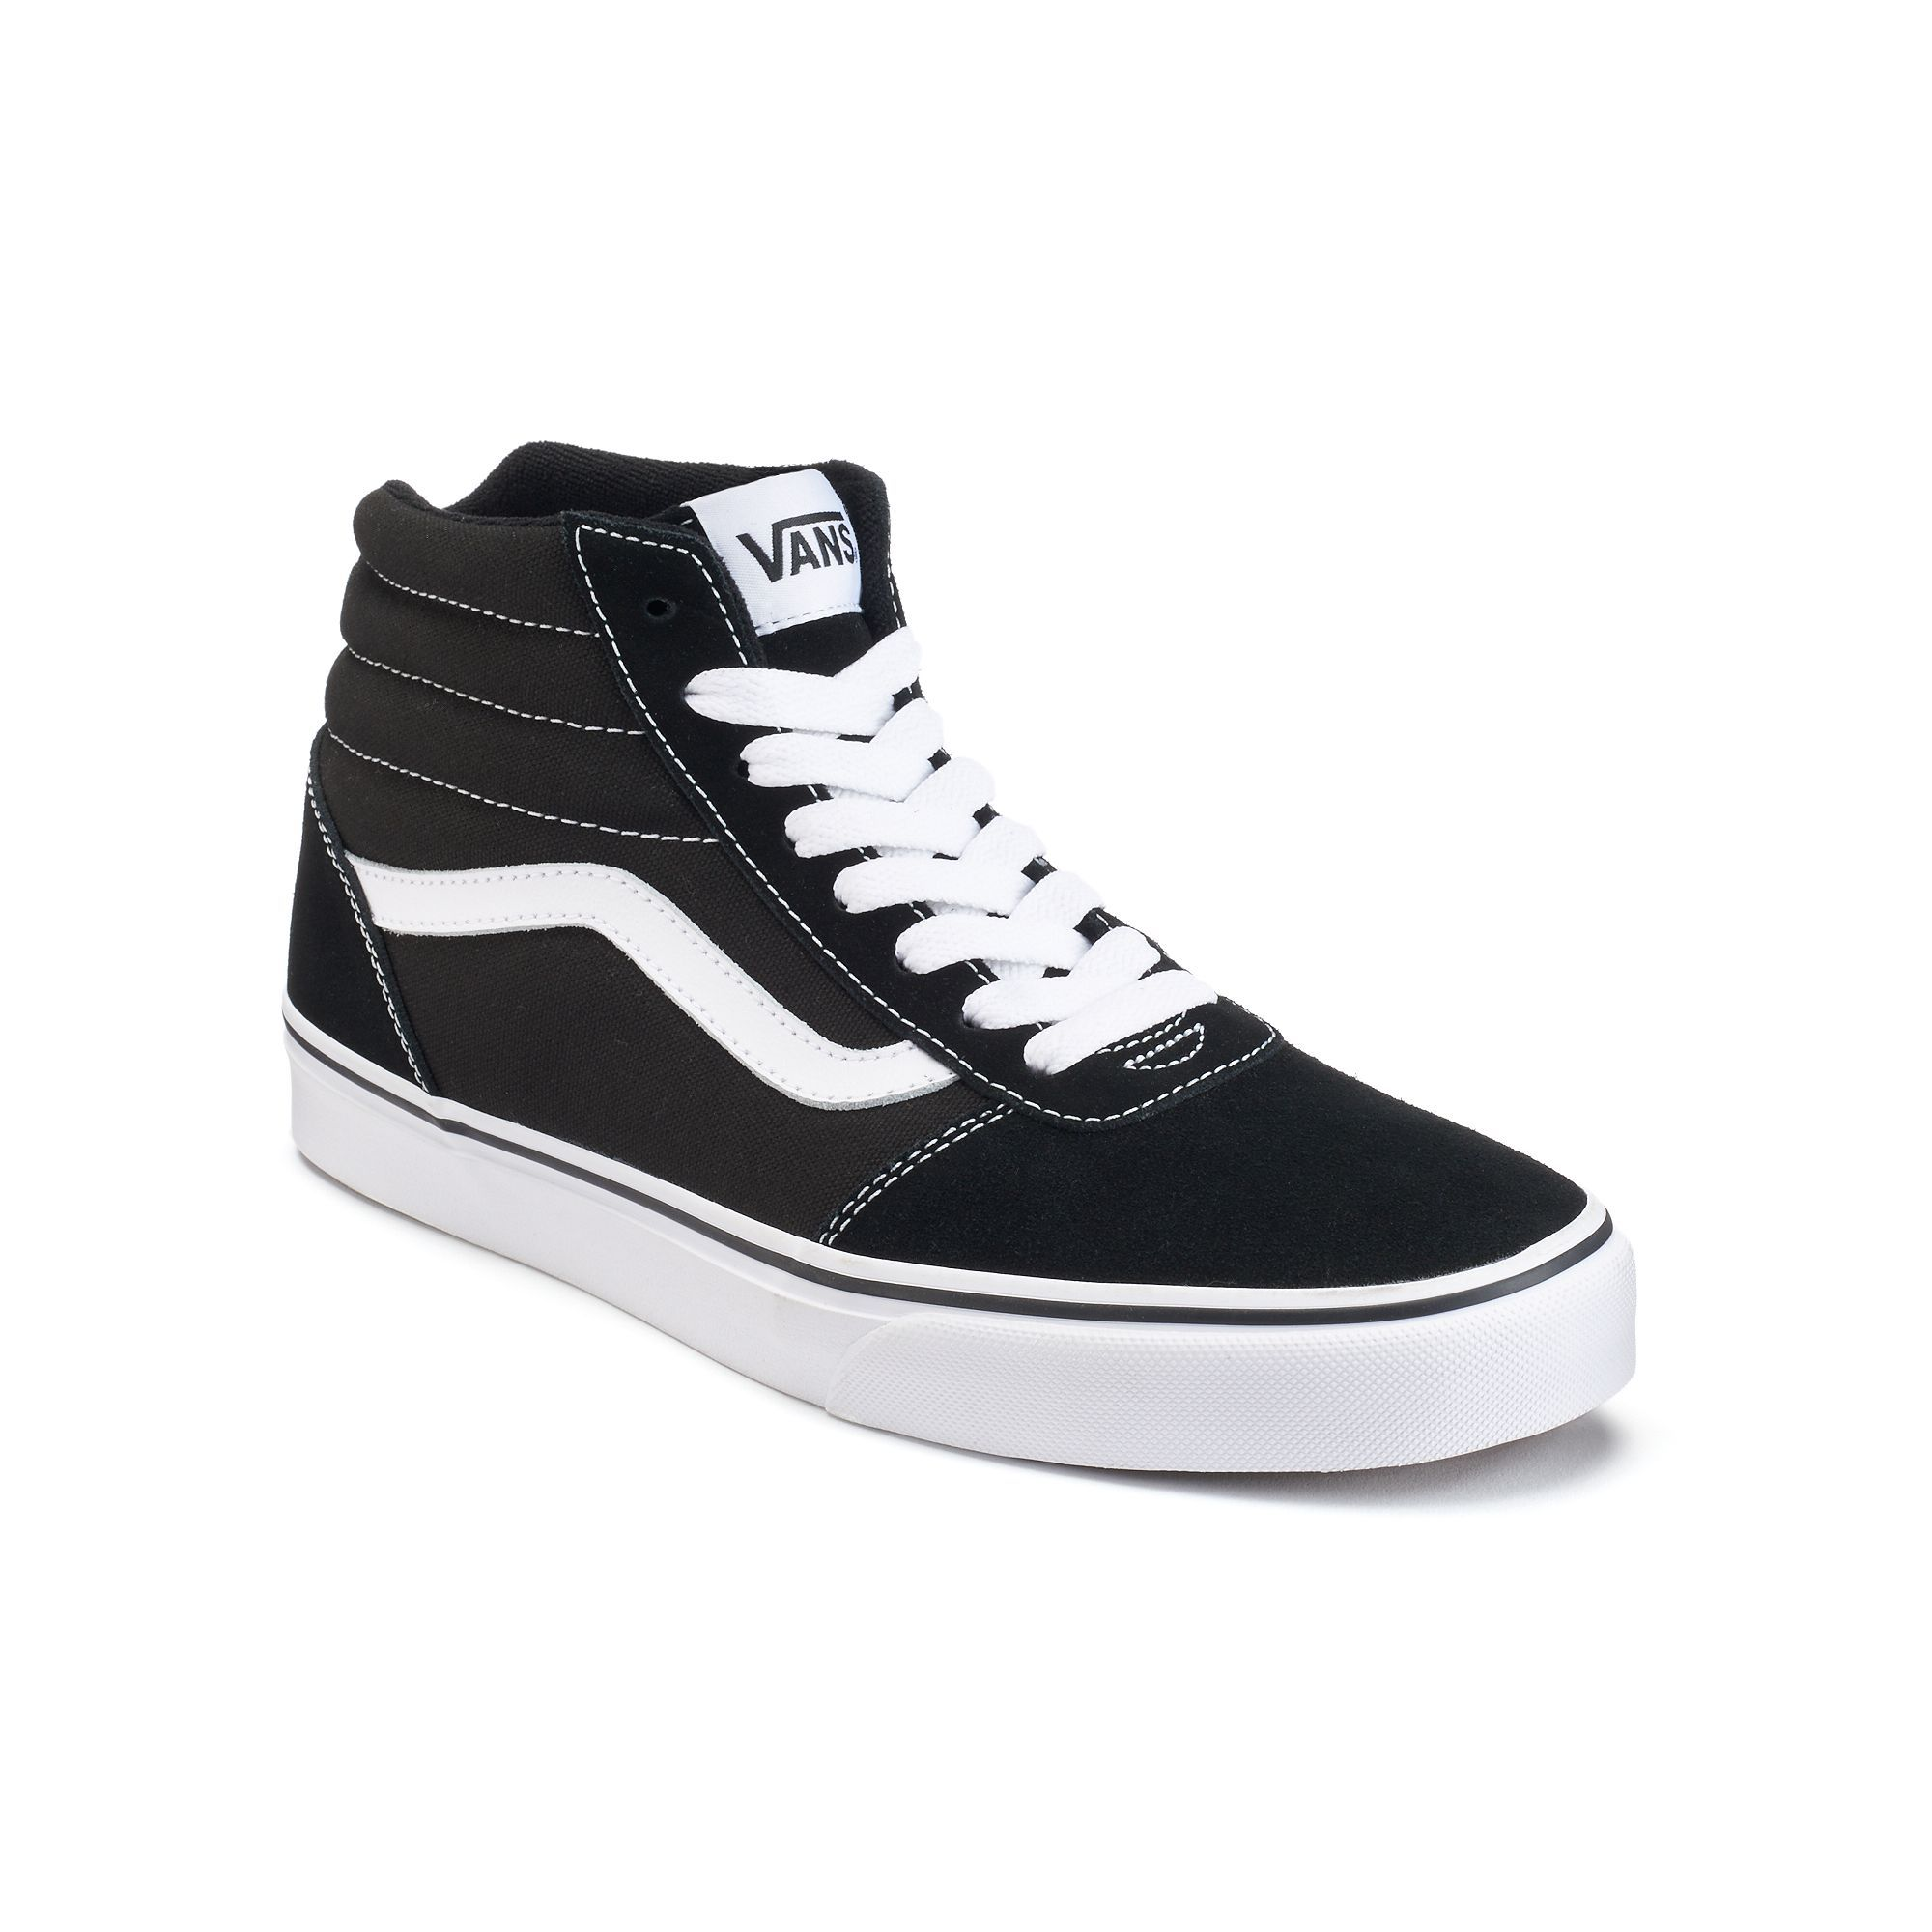 8b28c8308c8 Vans Ward Hi Men s Suede Skate Shoes